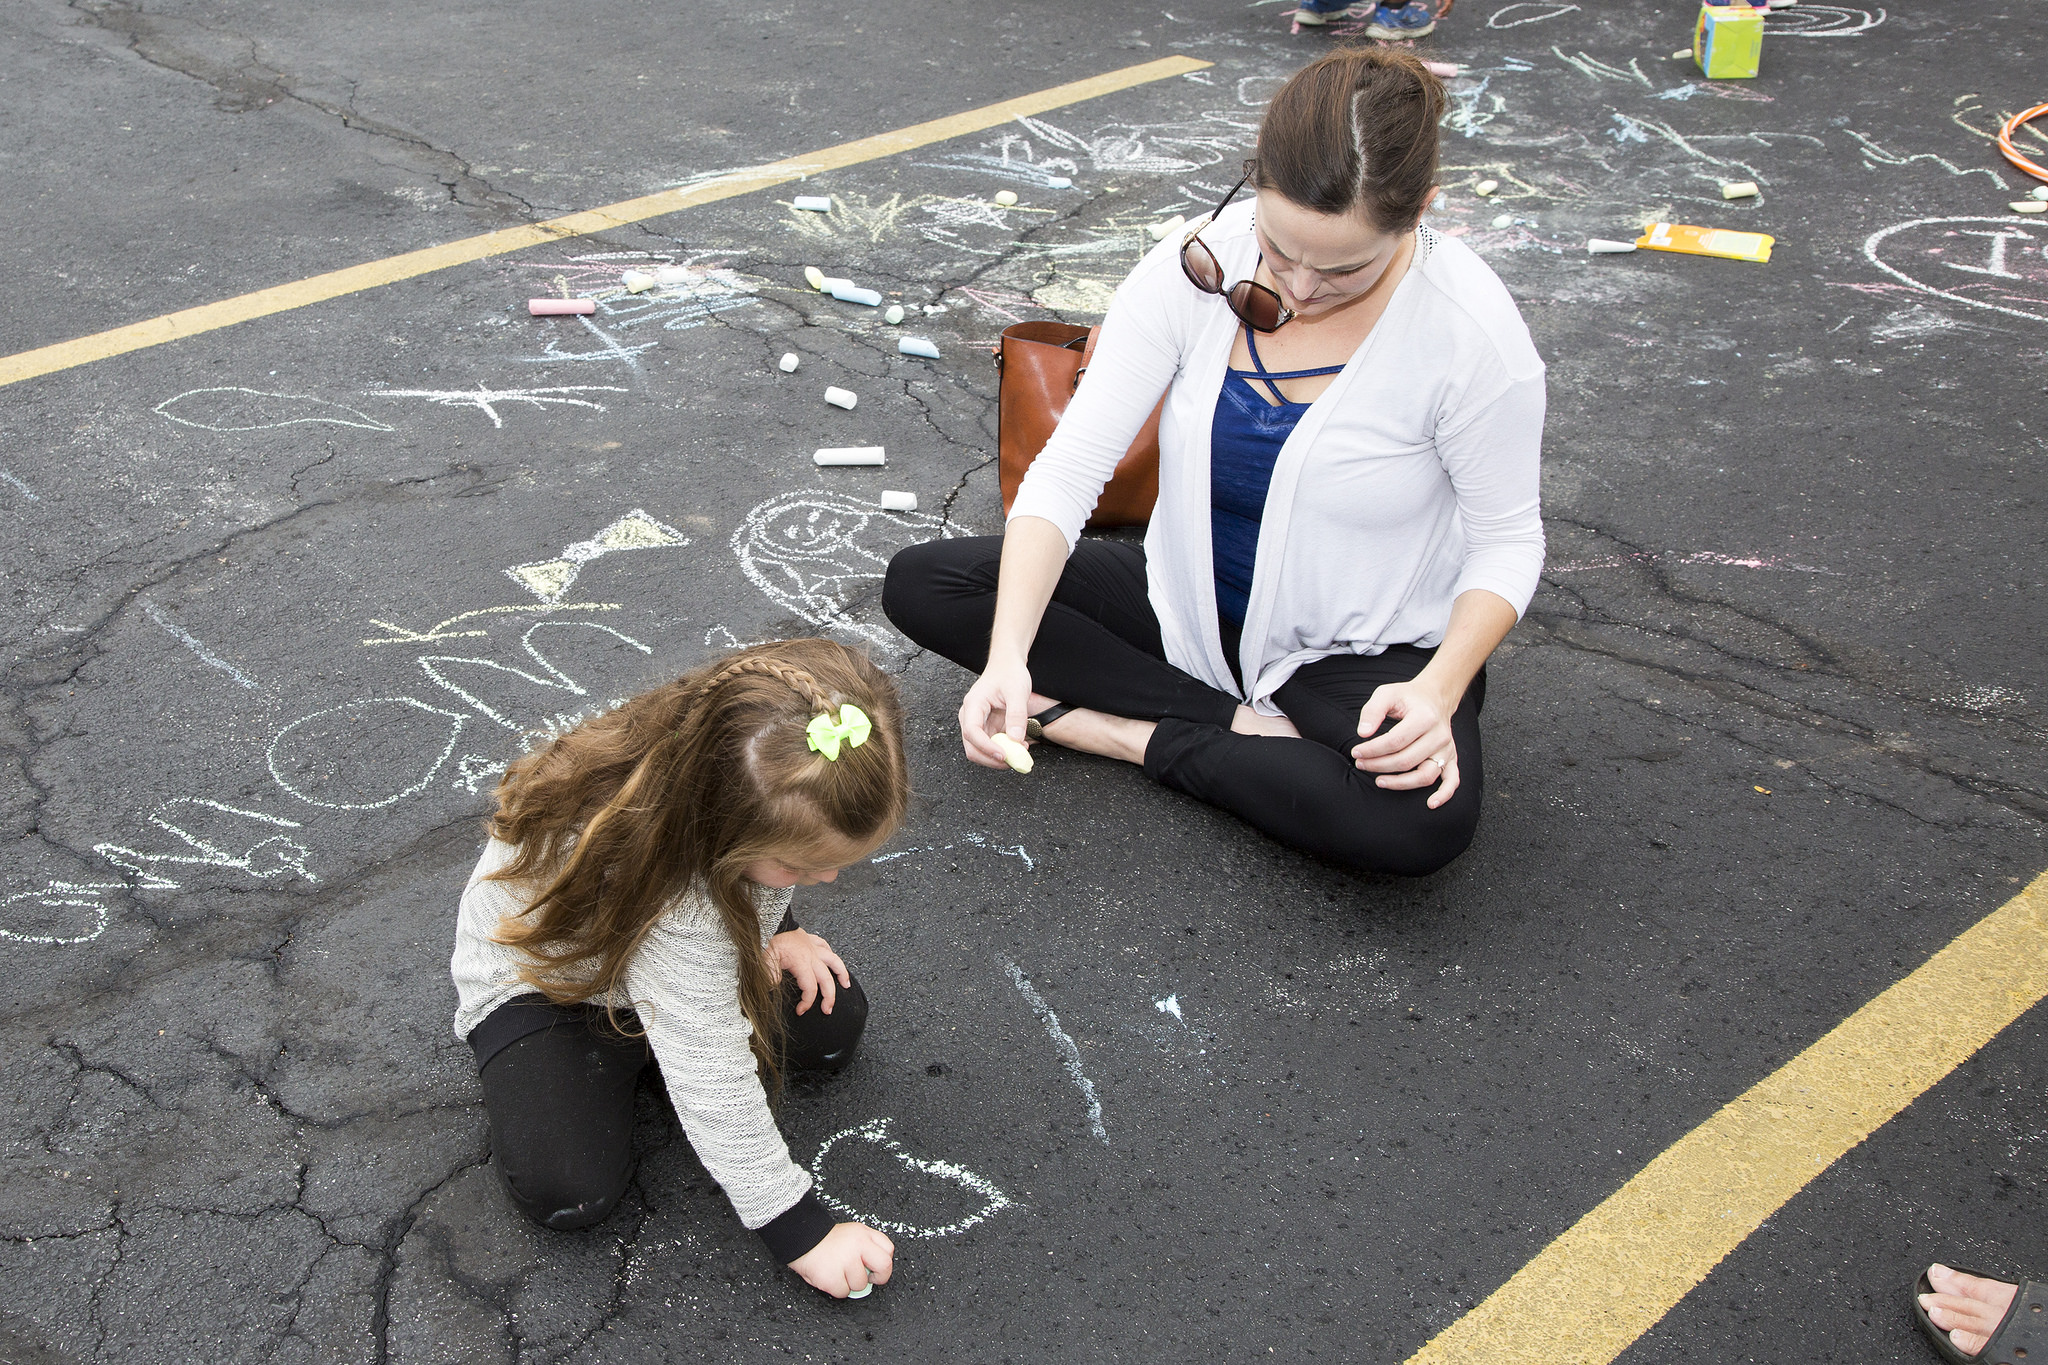 Sidewalk chalk art - mom and girl